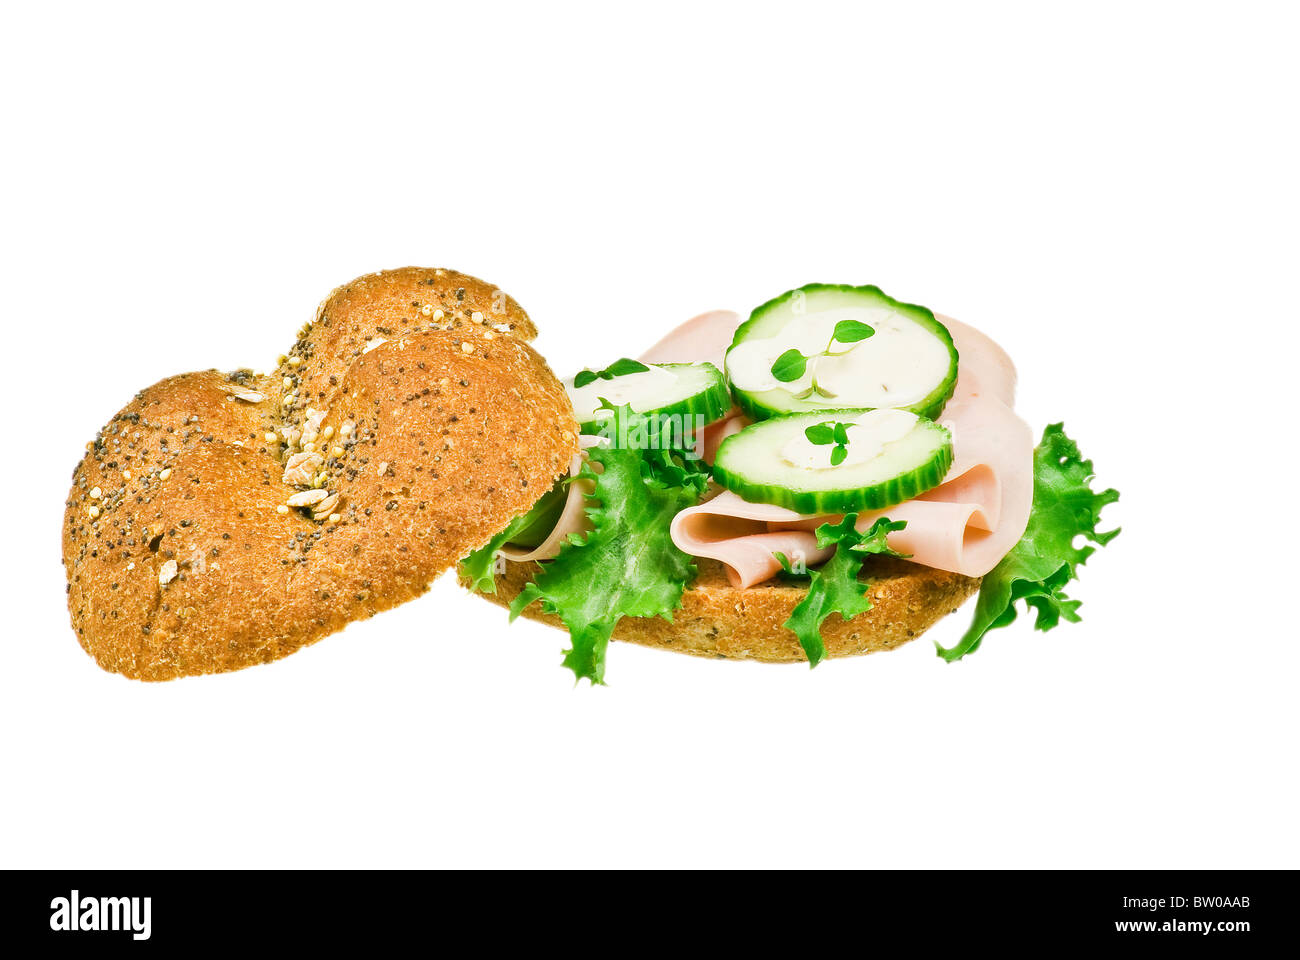 Fresh ham and cucumber sandwich over white background - Stock Image